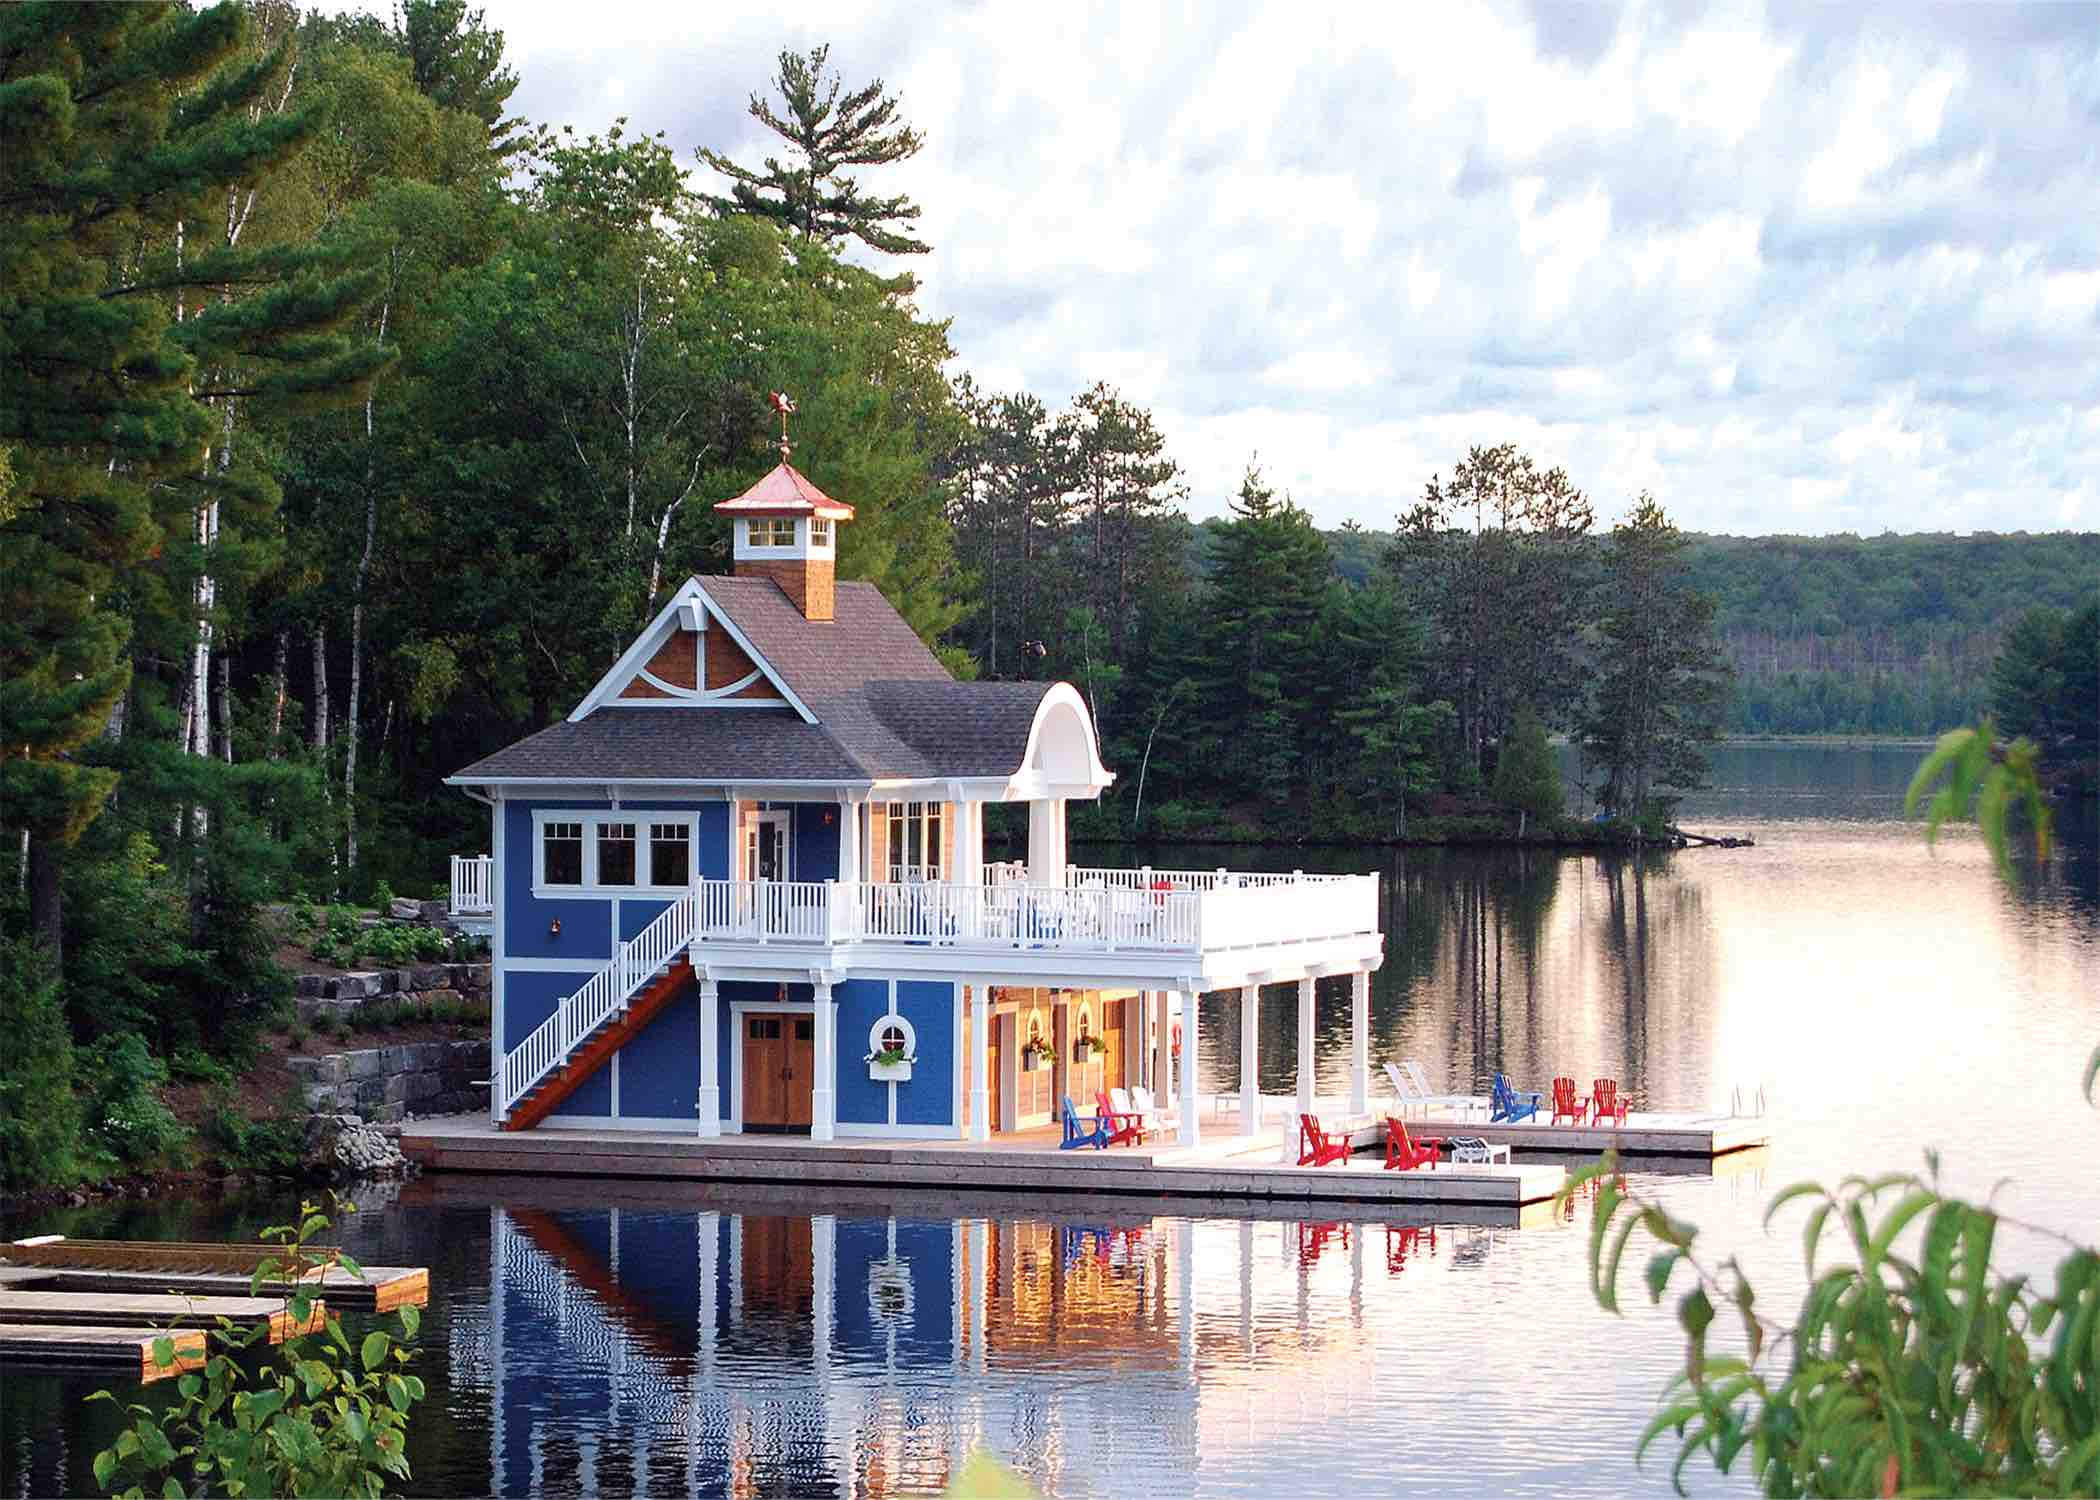 The Landscapes Lake of Bays The Boathouse